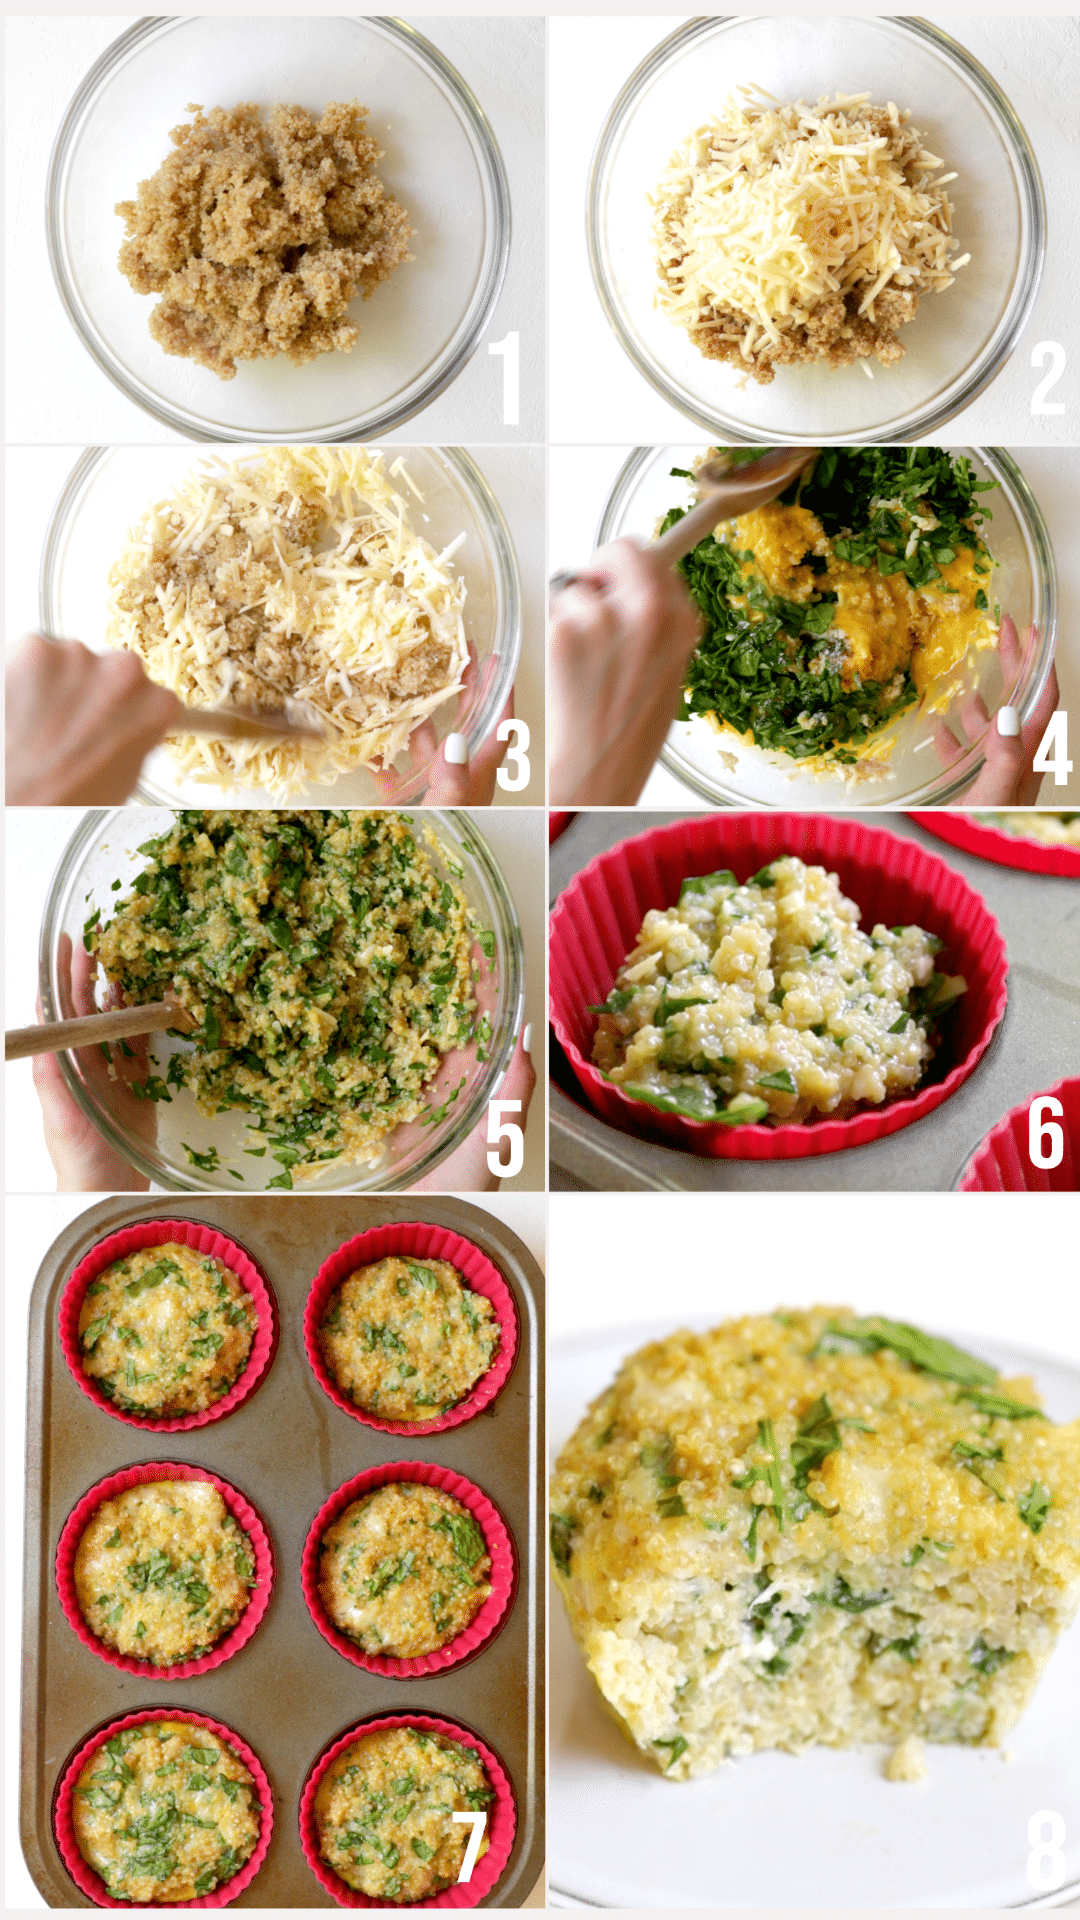 step by step photos of how to make quinoa egg muffins